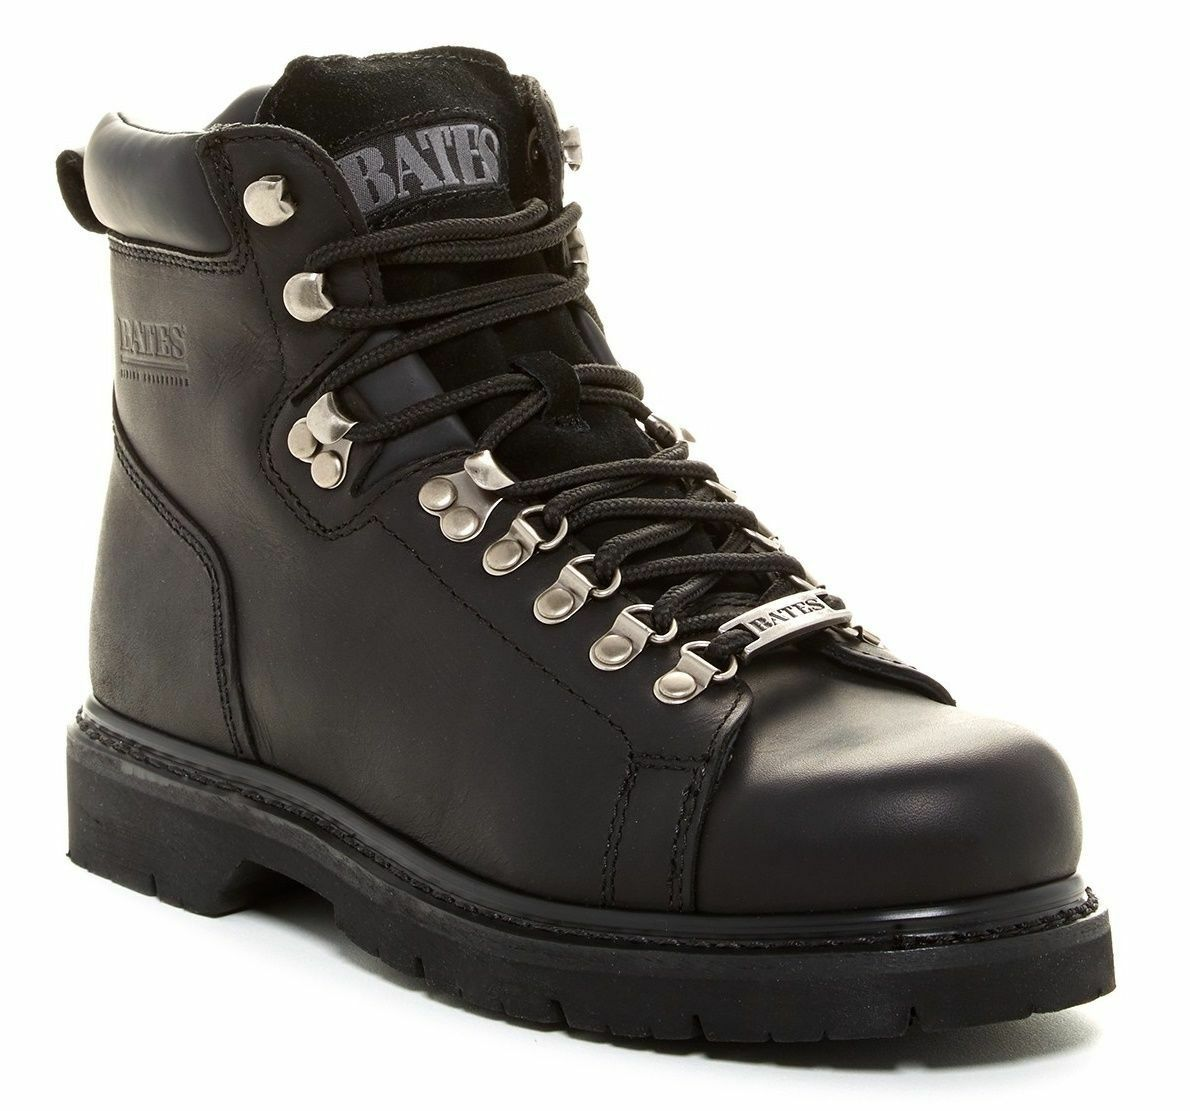 Bate By Wolverine Black Canyon Boot 6